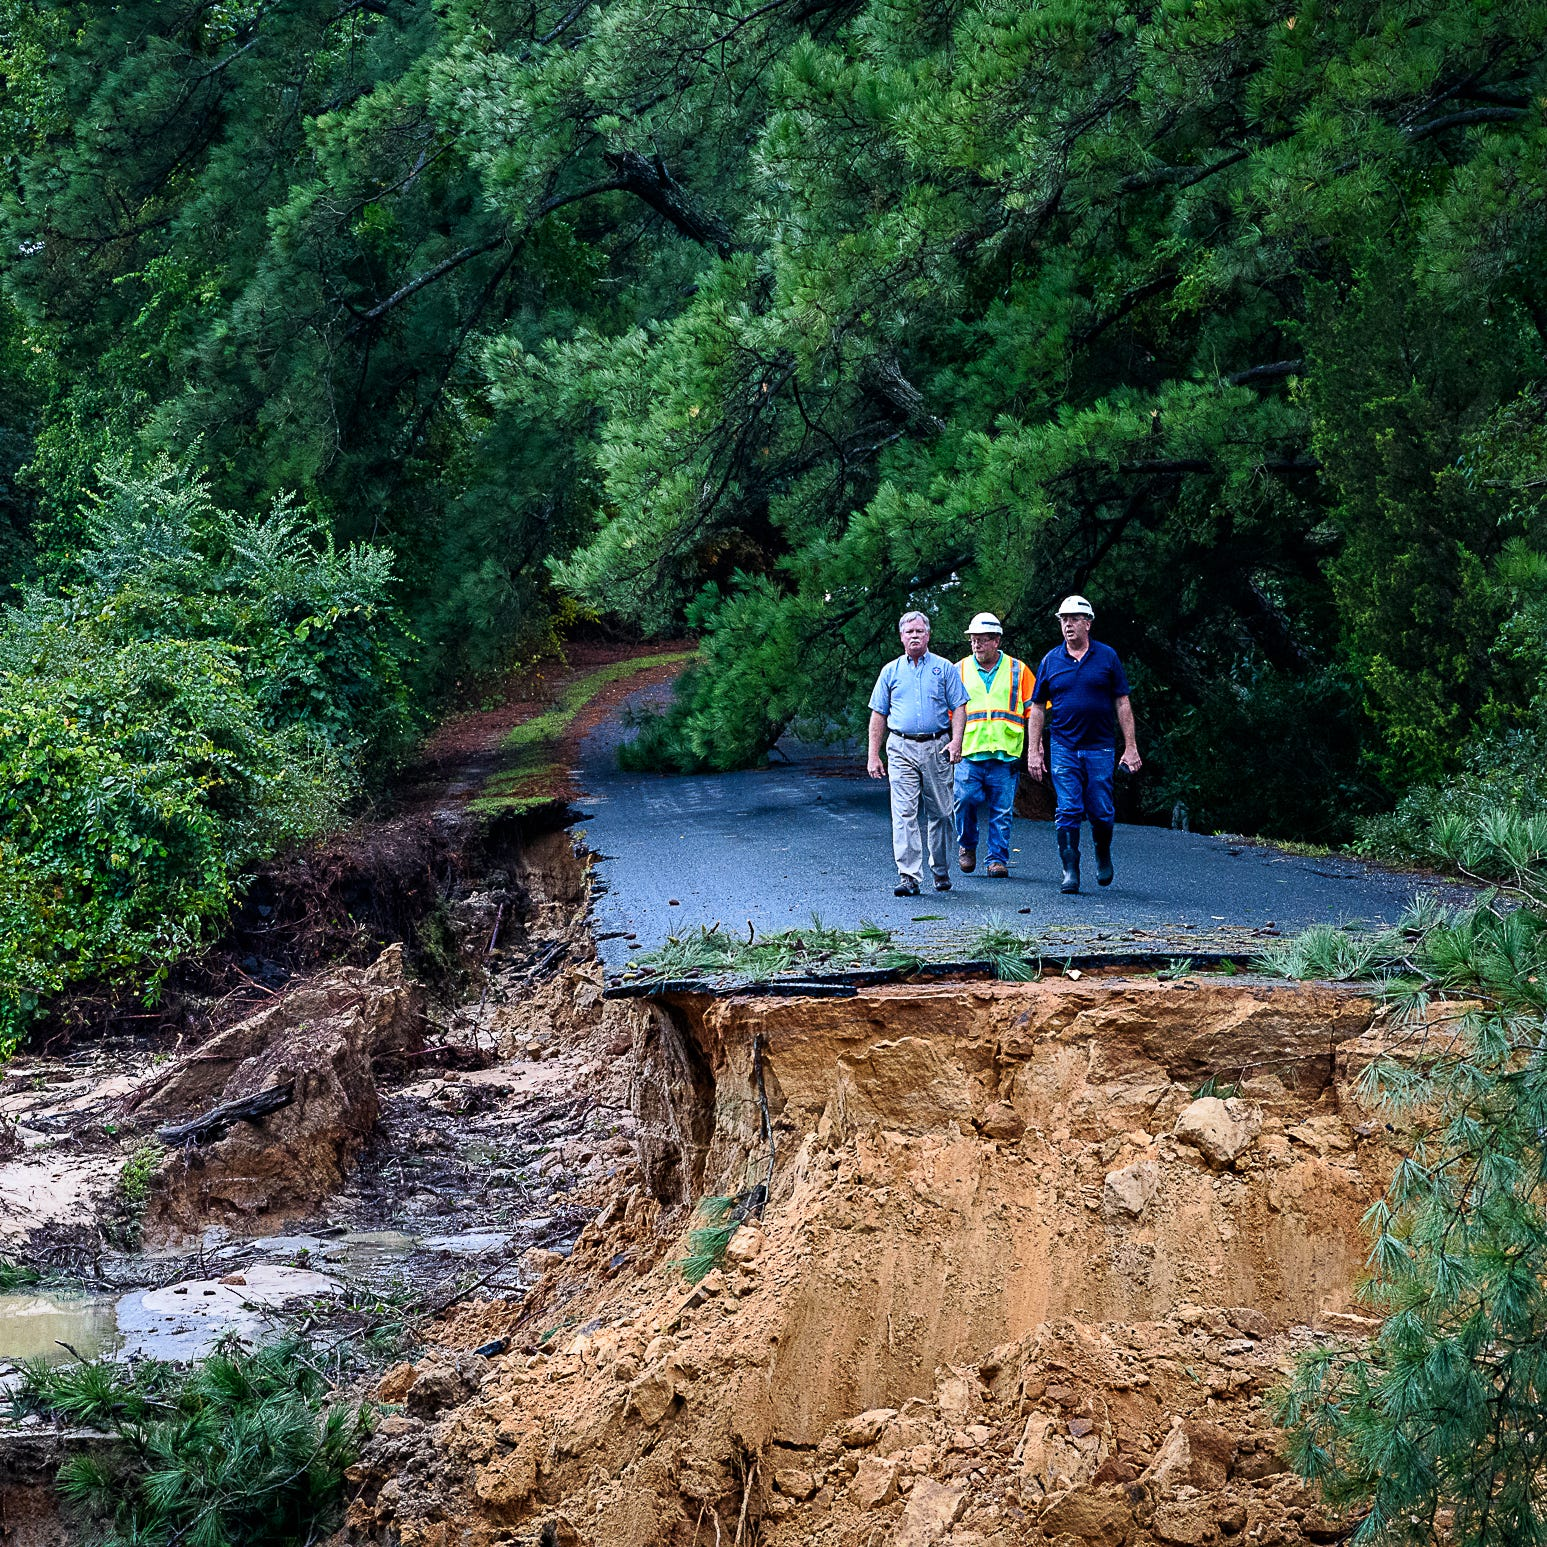 Rains wash out road on Virginia's Eastern Shore